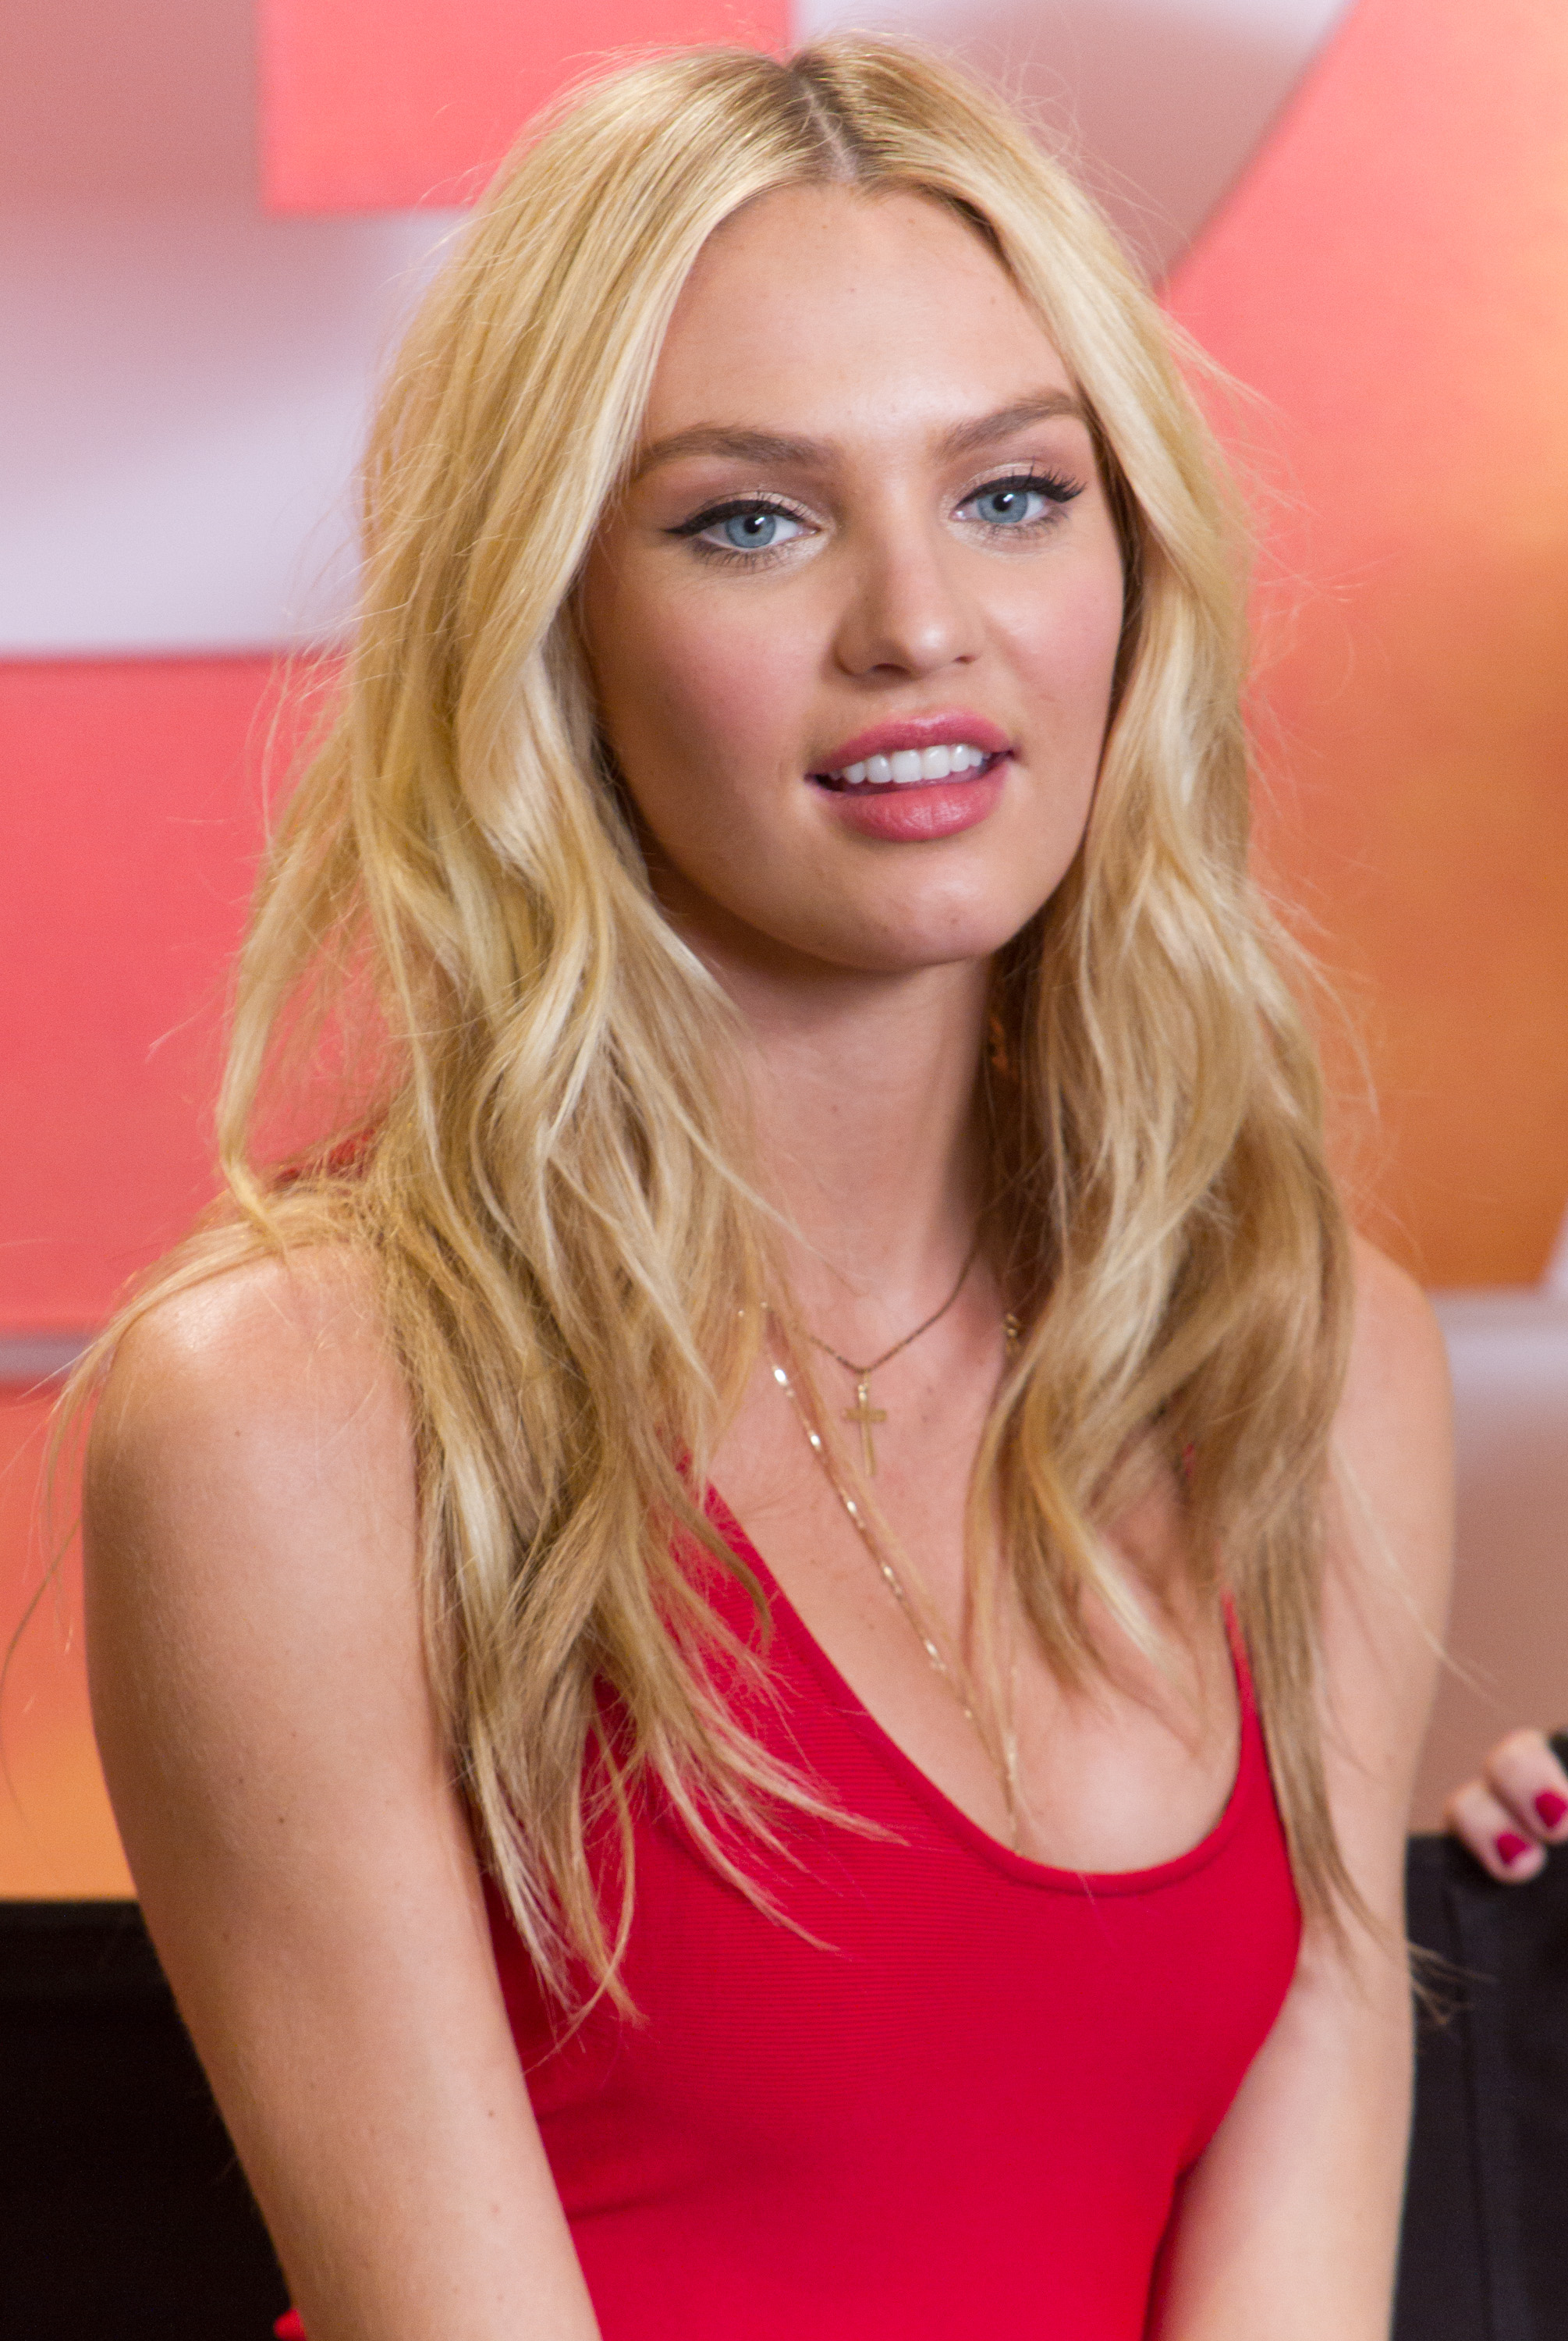 Candice Swanepoel Photo 2408 Of 6876 Pics Wallpaper